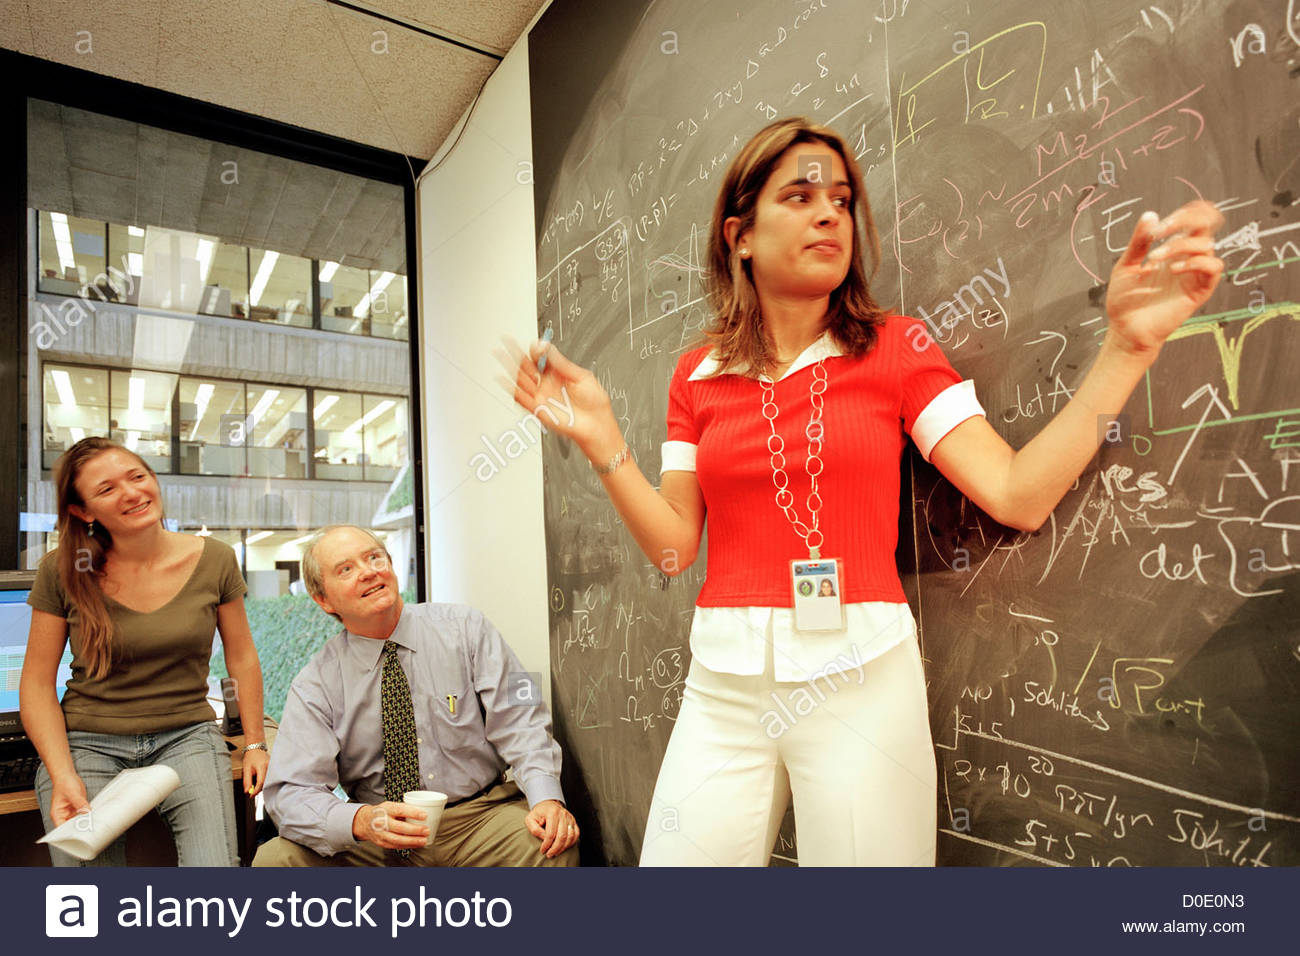 Chalkboard of the 21st Century - Stock Image